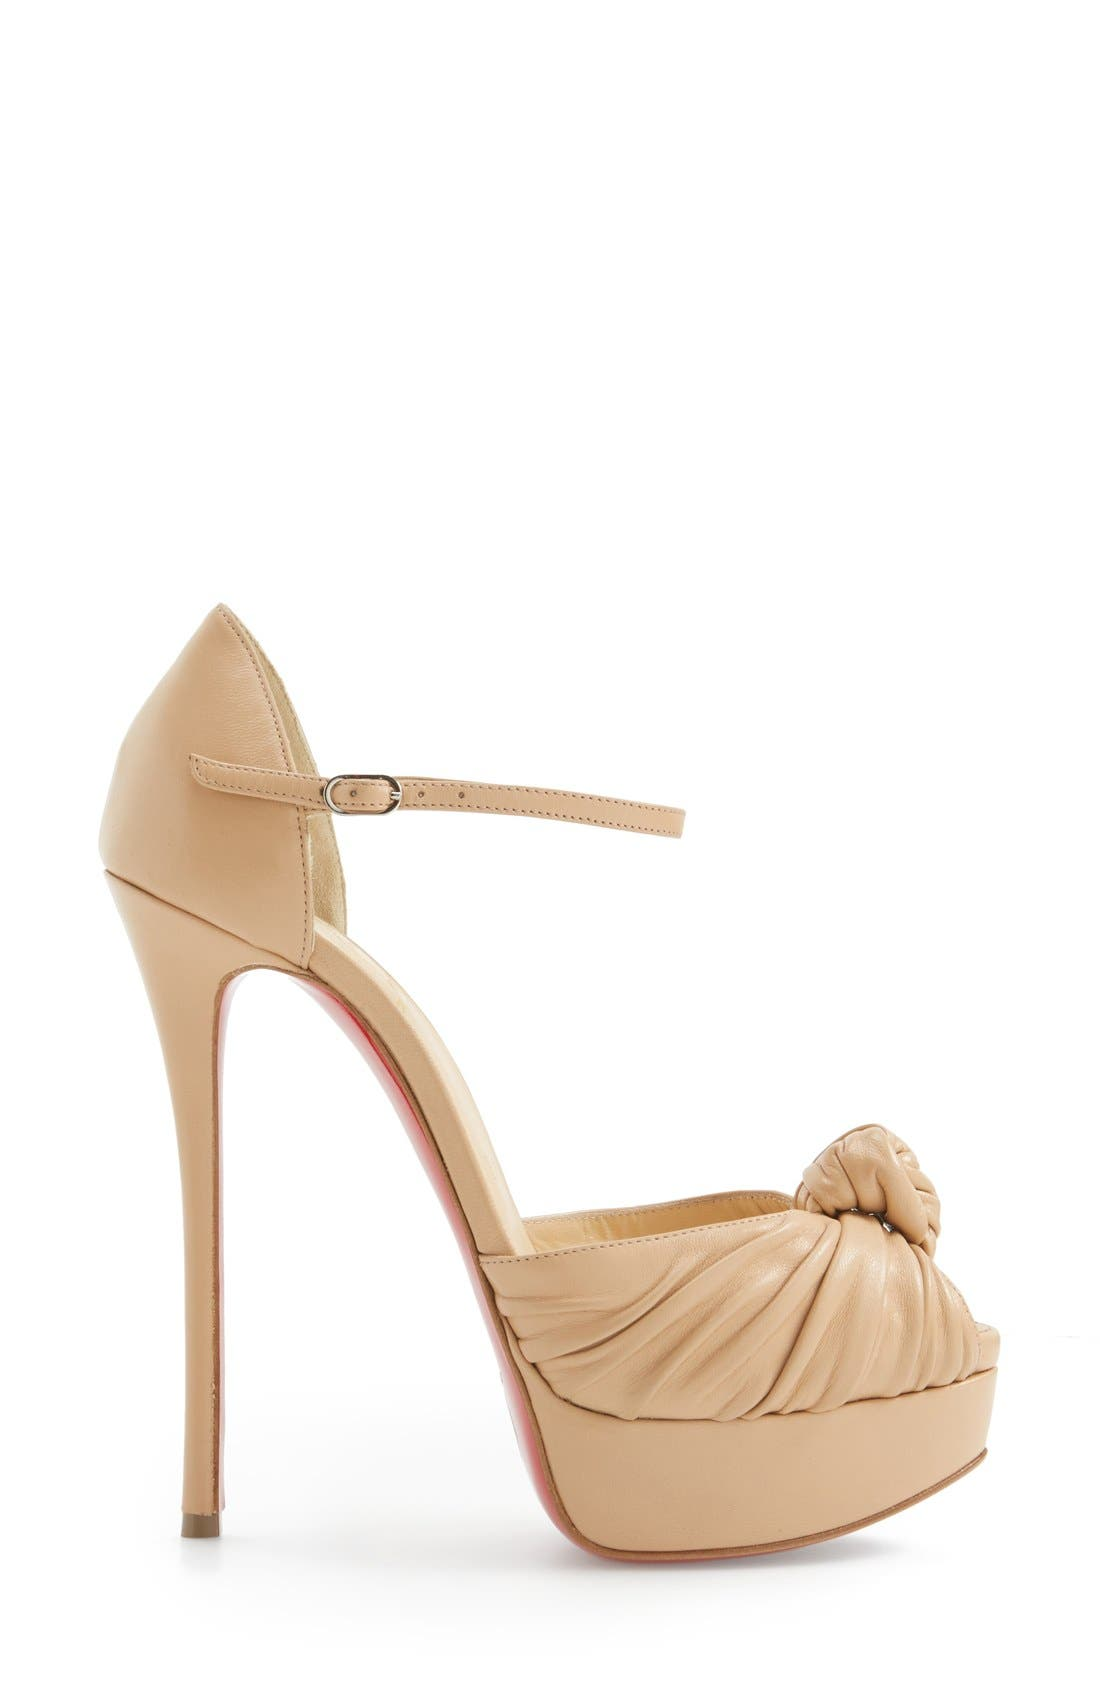 Marchavekel Knot Sandal,                             Alternate thumbnail 4, color,                             Nude Leather